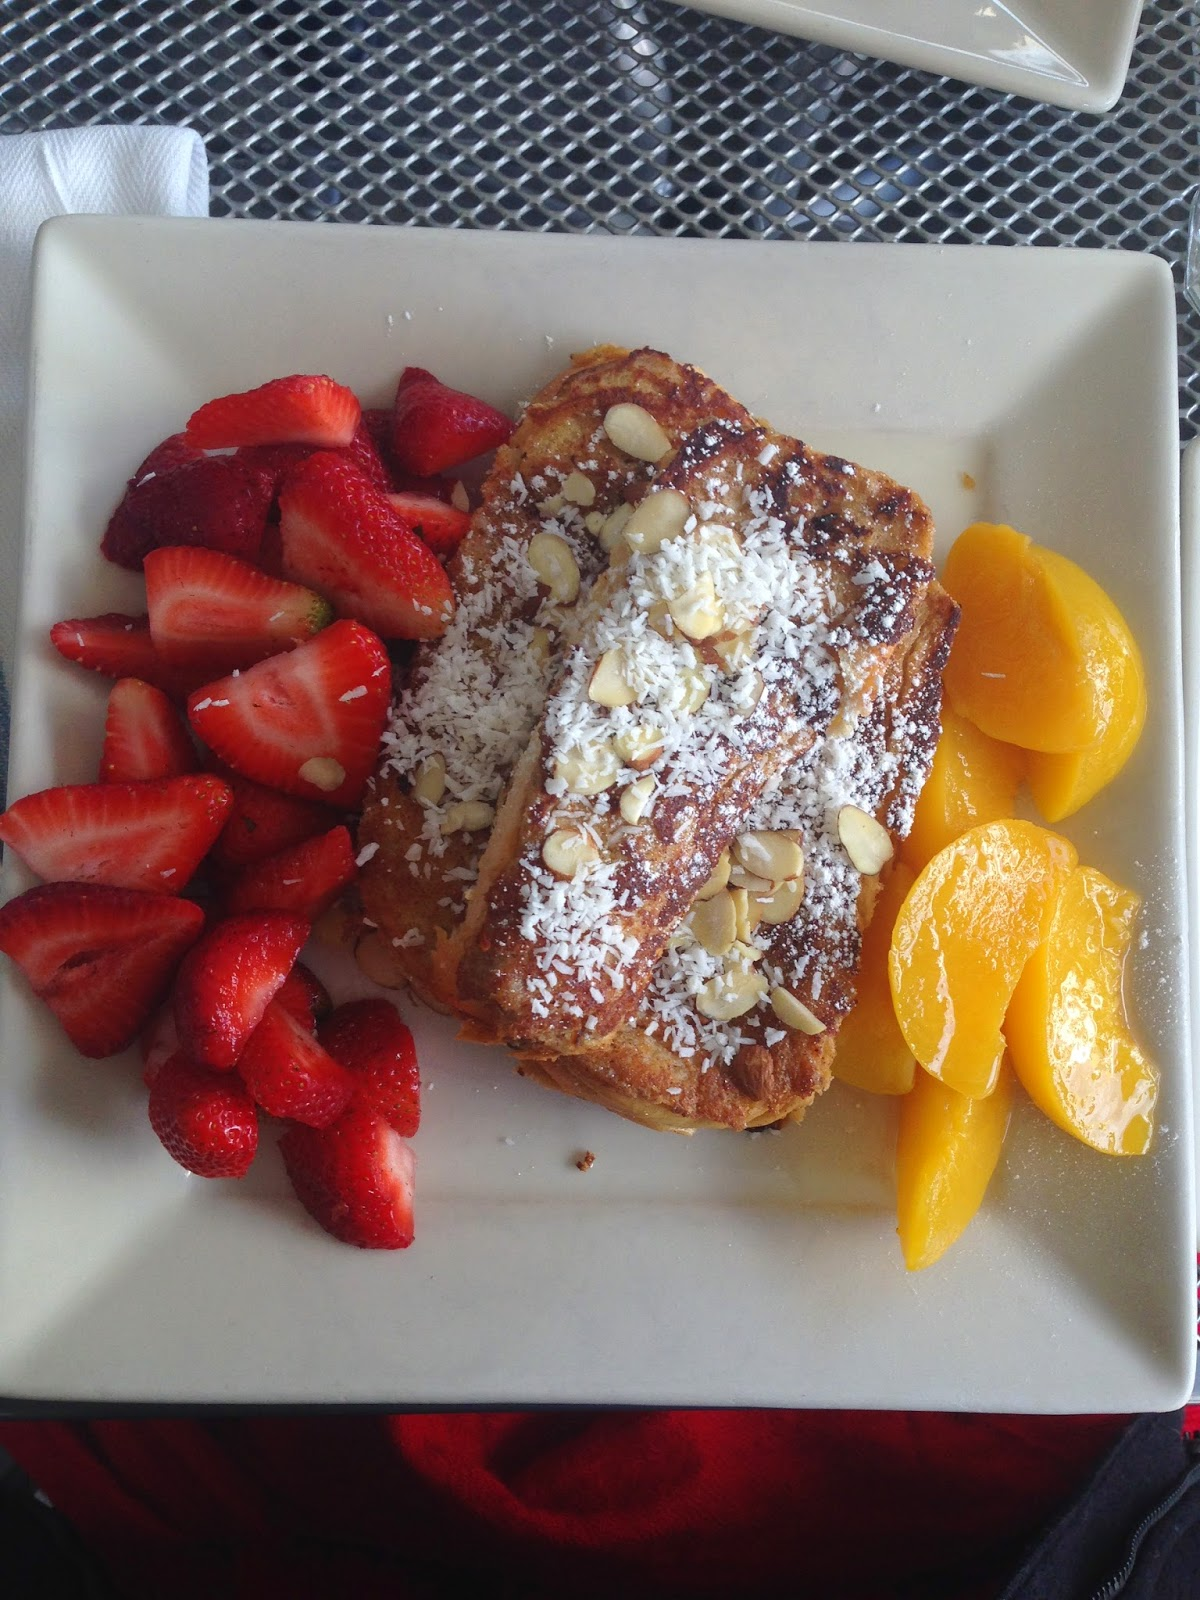 French toast at Portage Bay